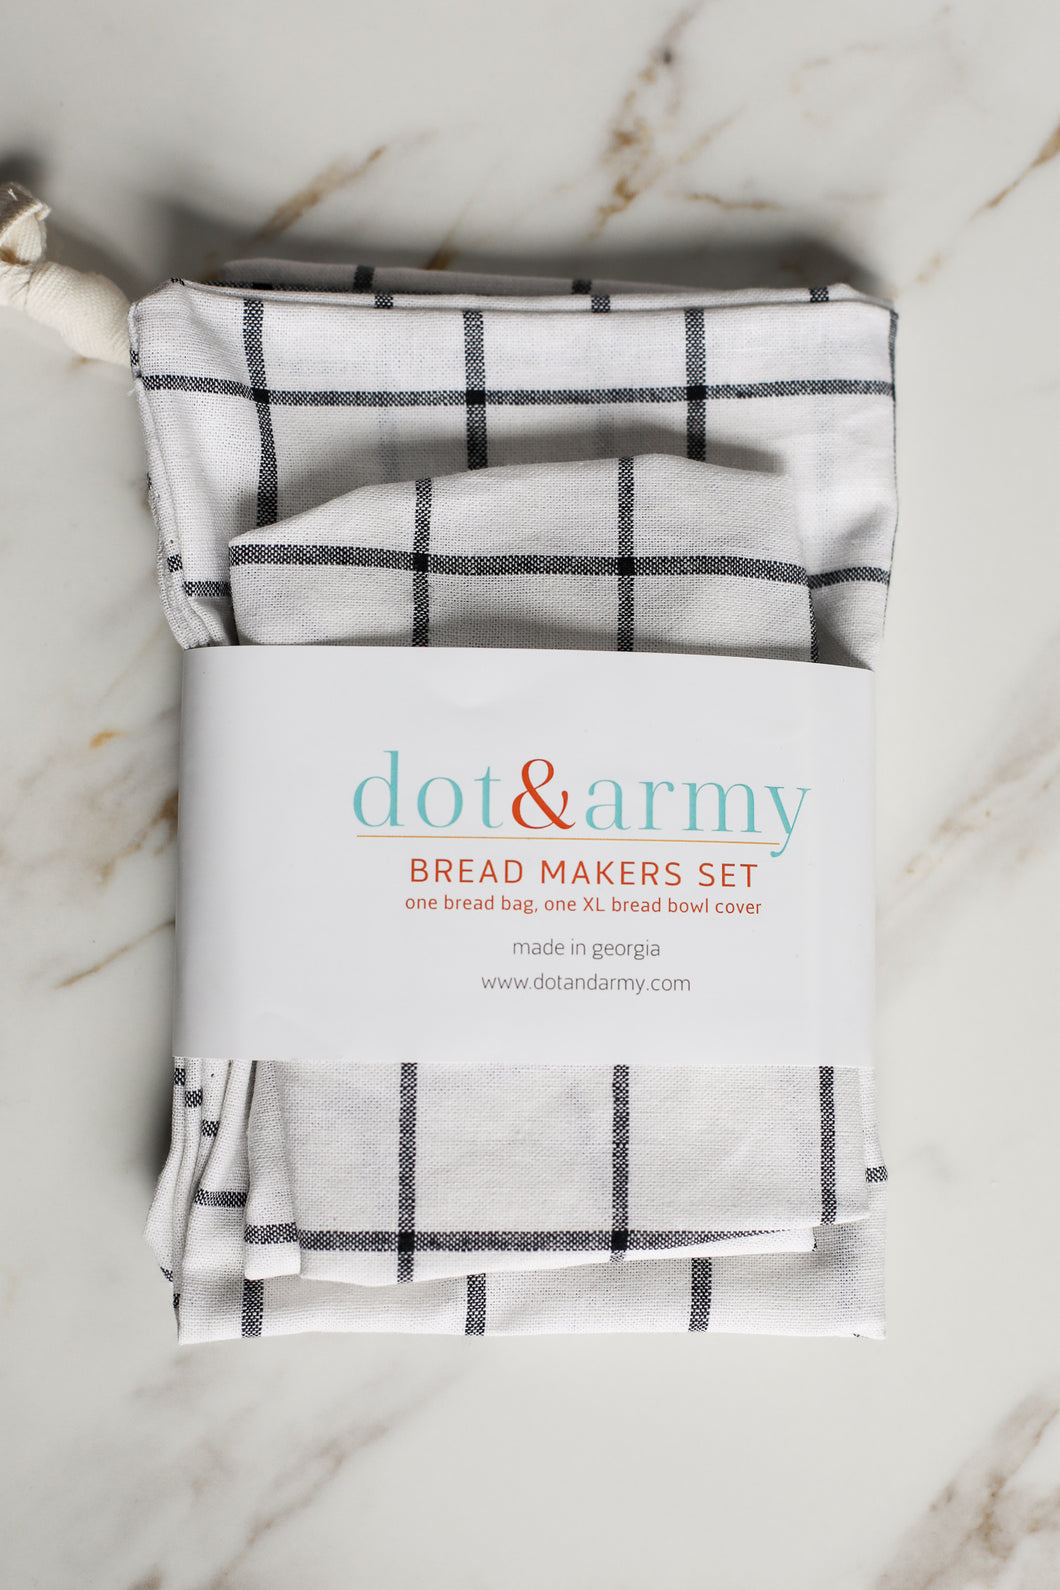 Dot & Army Bread Makers Set Windowpane